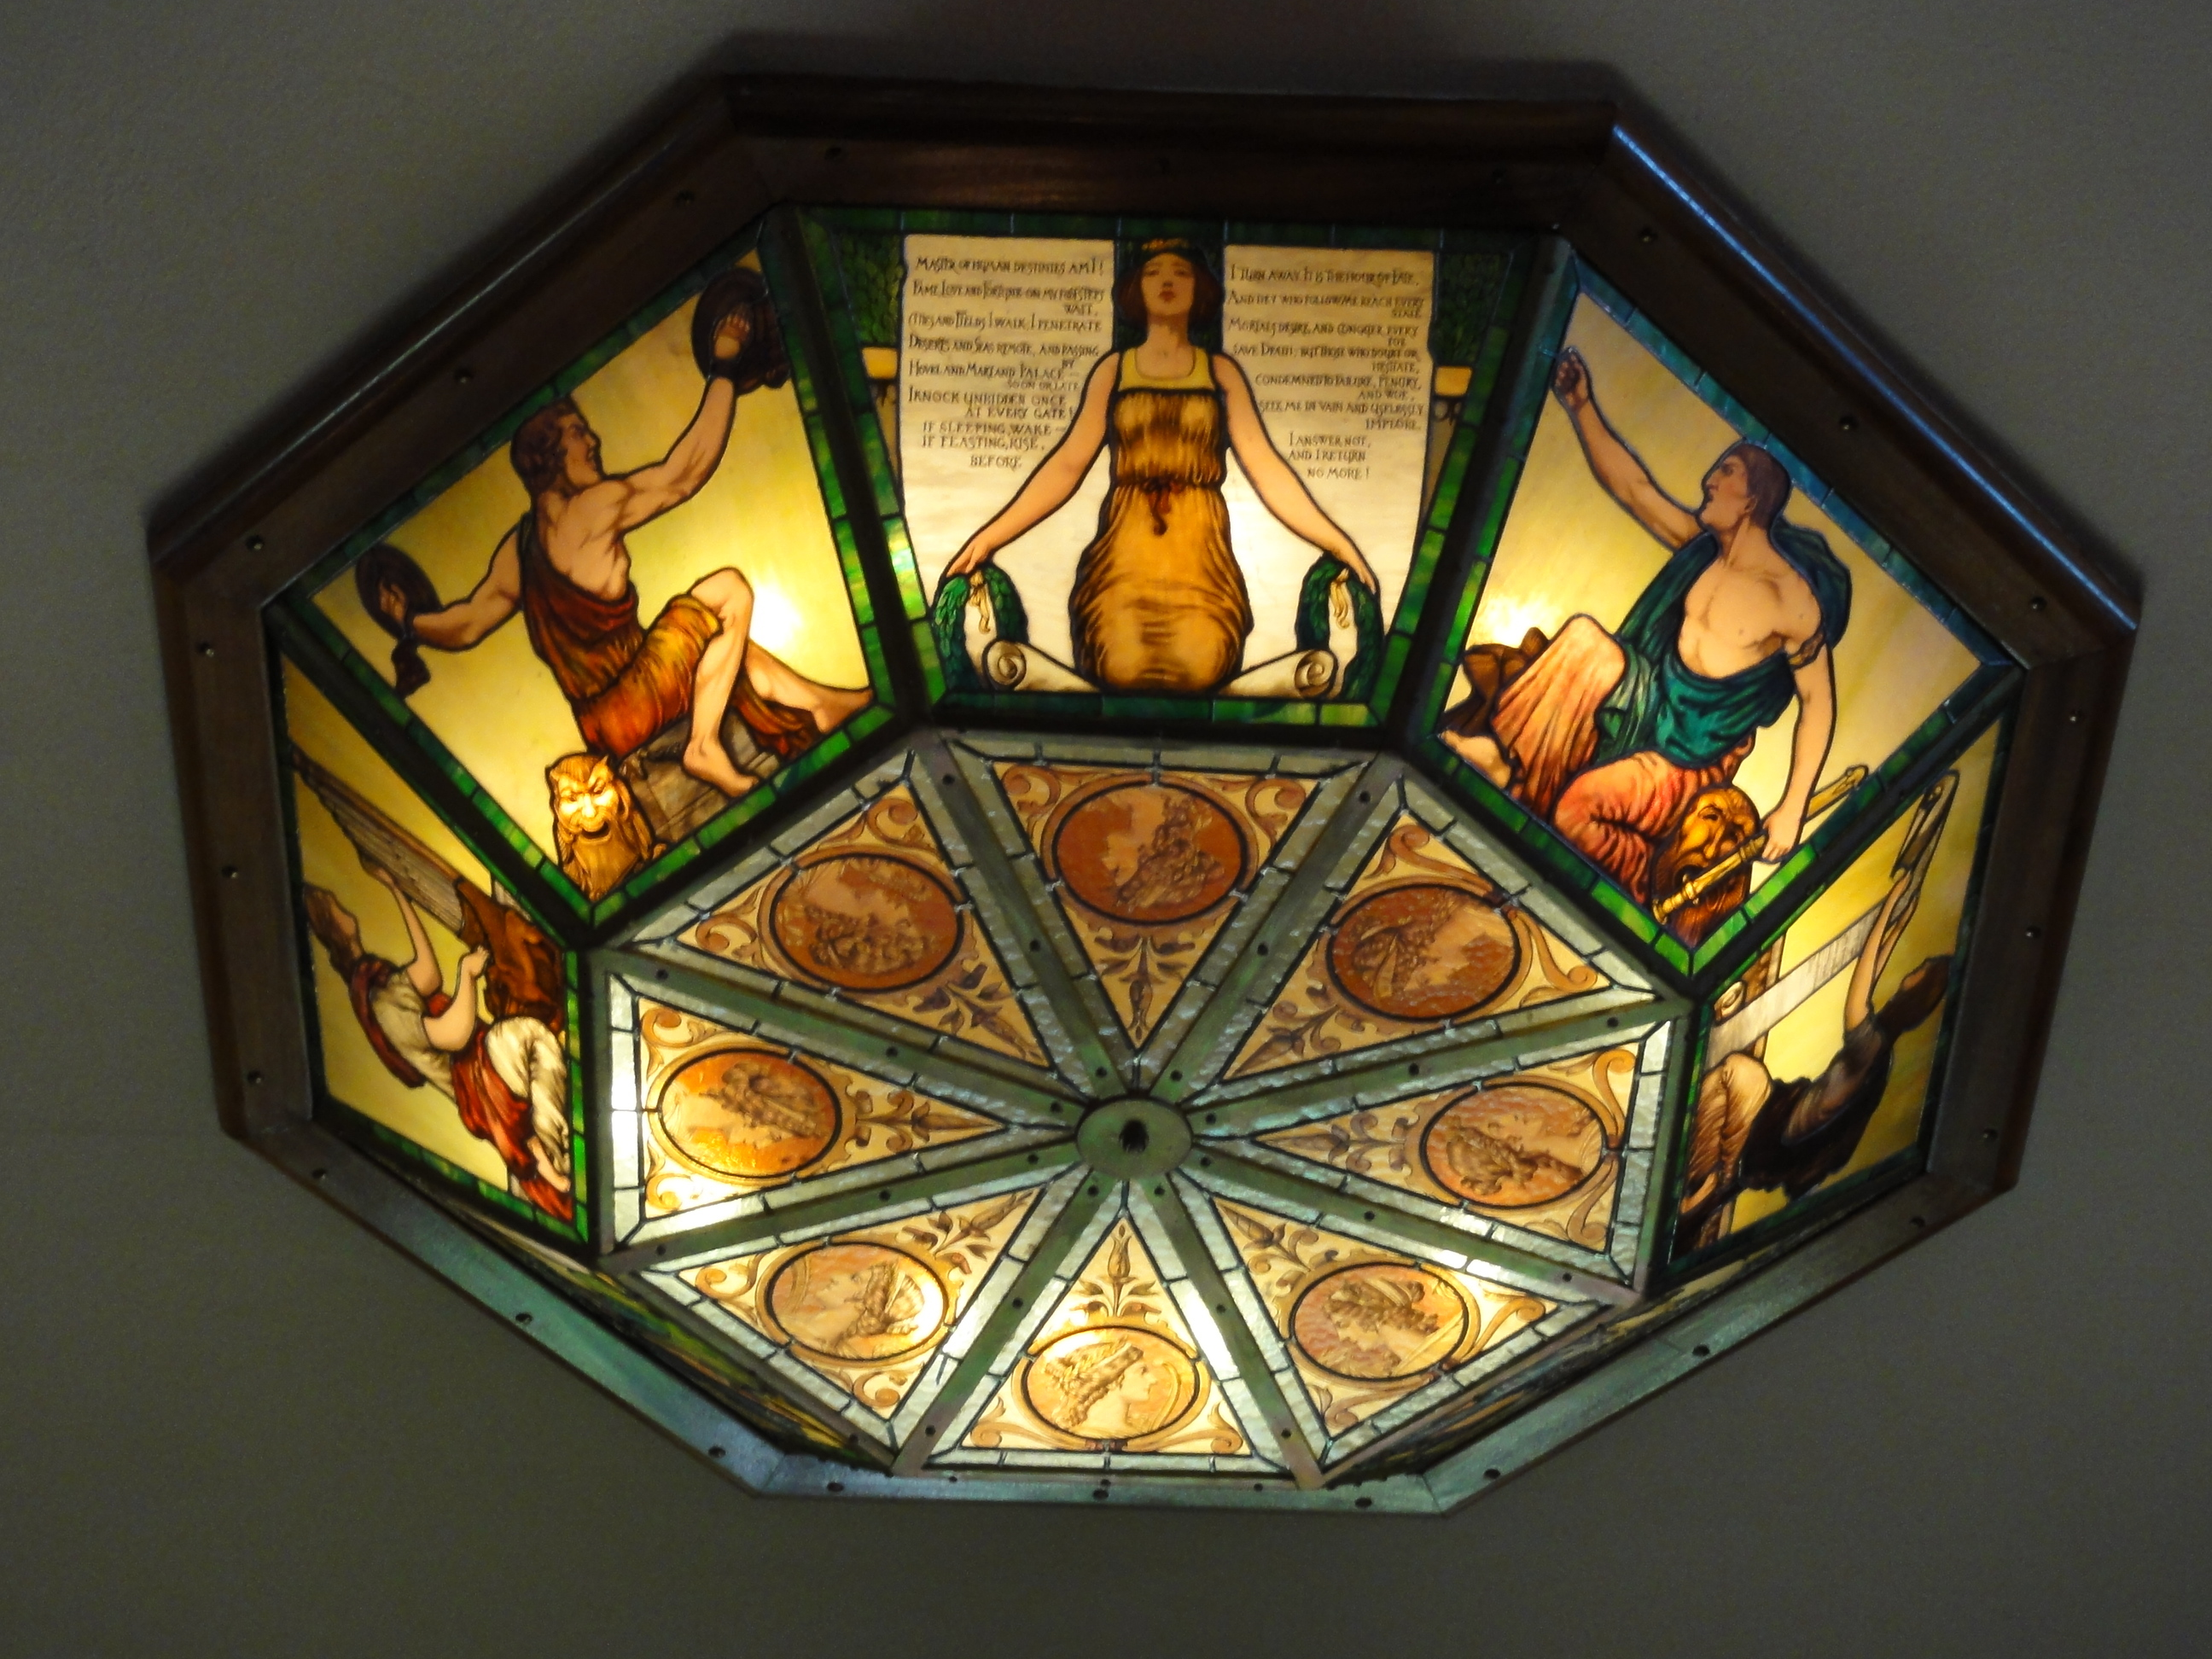 This Stained Glass Light Fixture